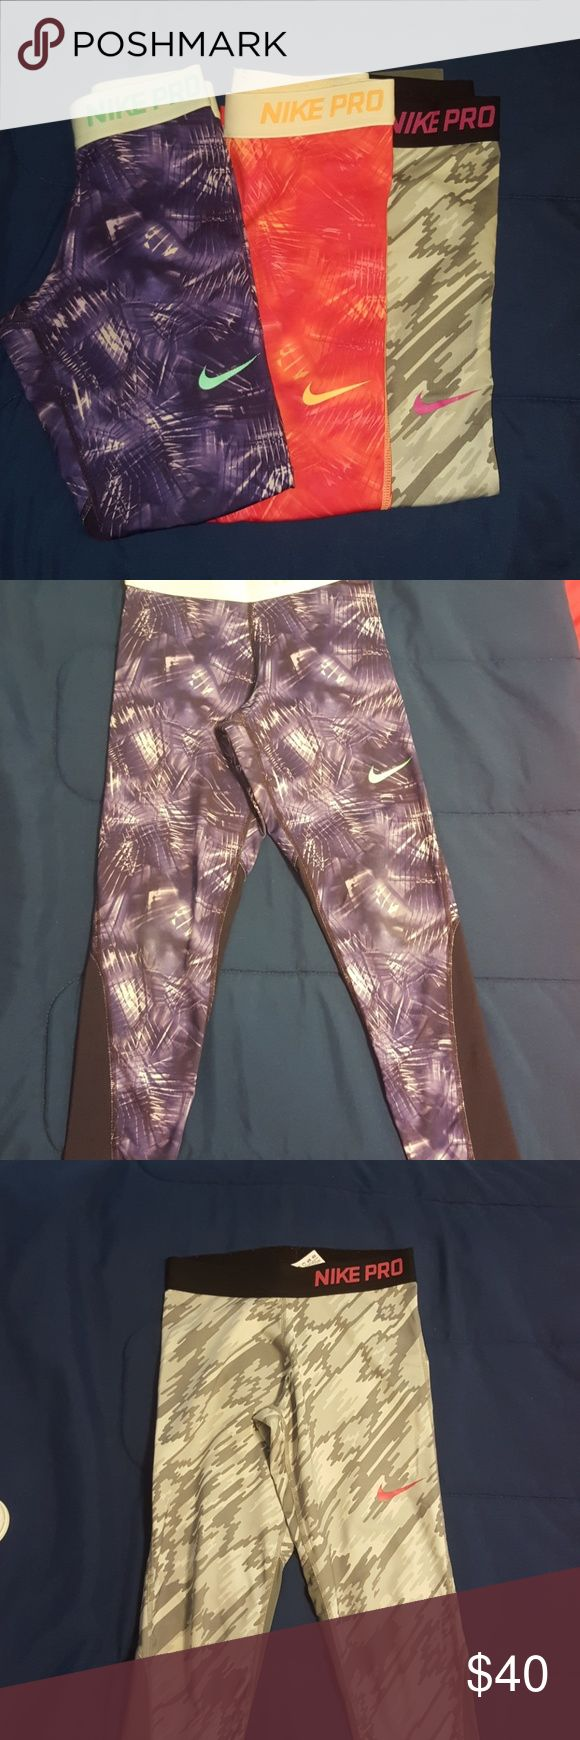 3 pair of girls Nike Pro pants 3 pair of girls Nike Pro Pants in Excellent used condition! These are so comfy great for cheer or gymnastics Nike pro Bottoms Leggings